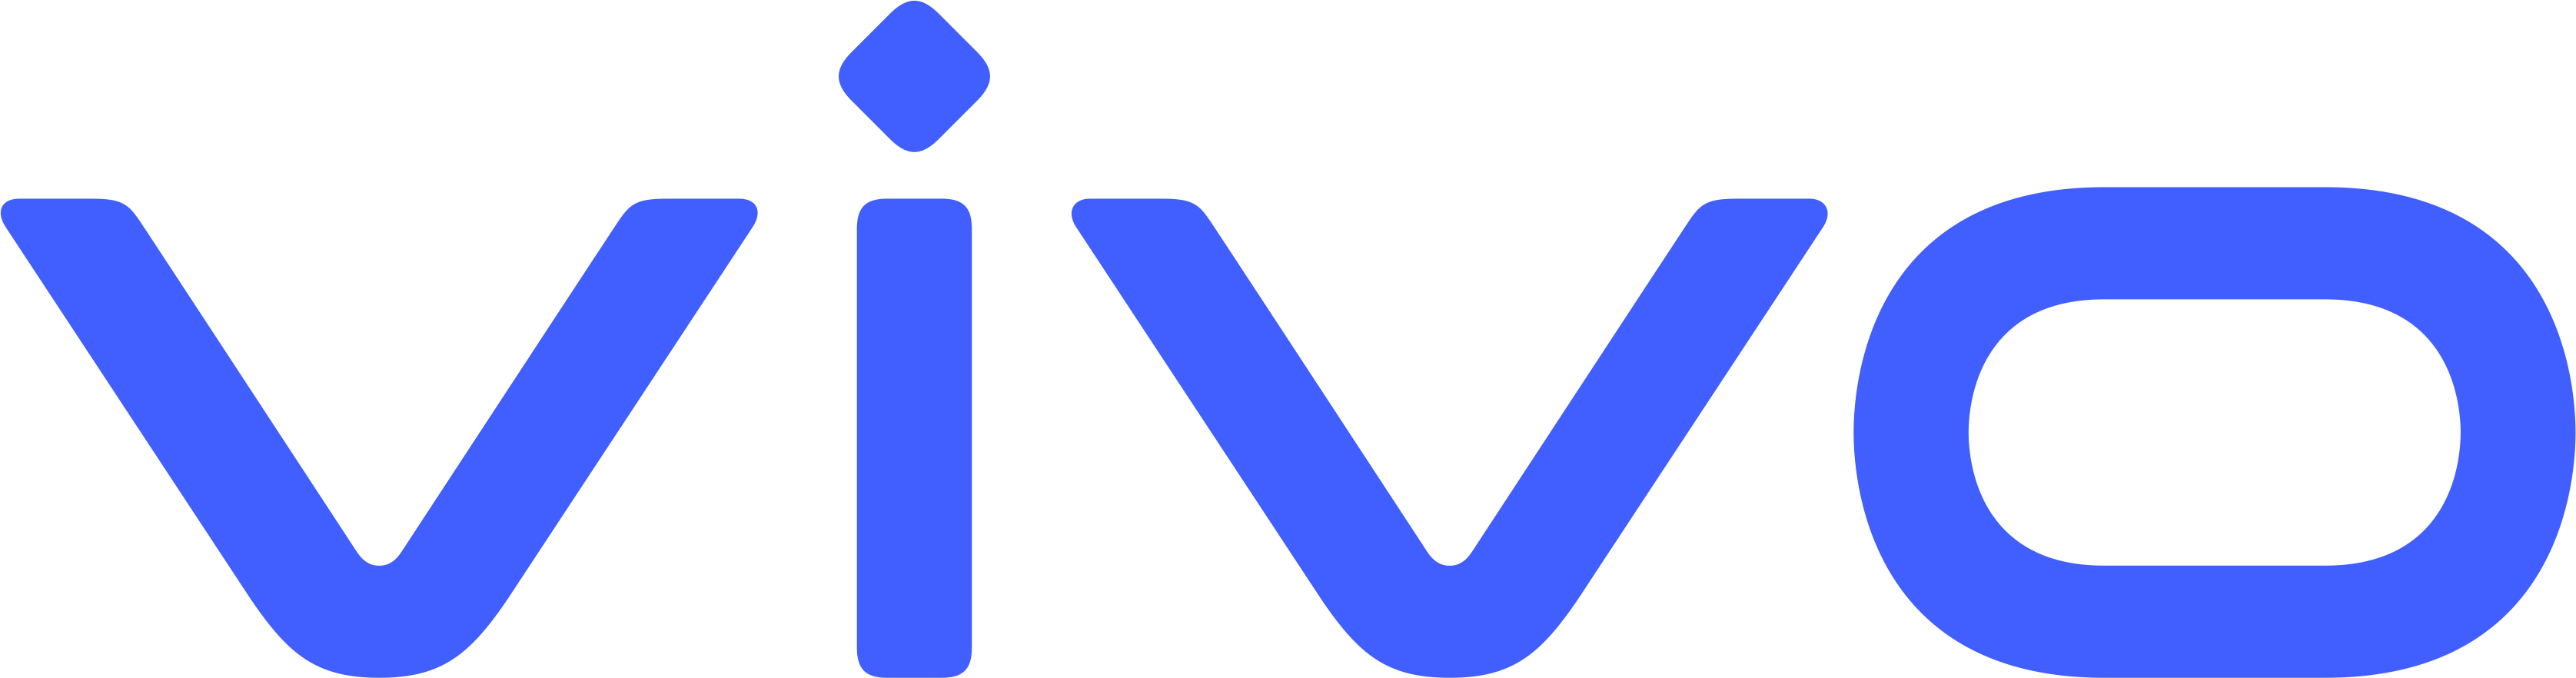 Vivo Mobile Communication Co., Ltd.